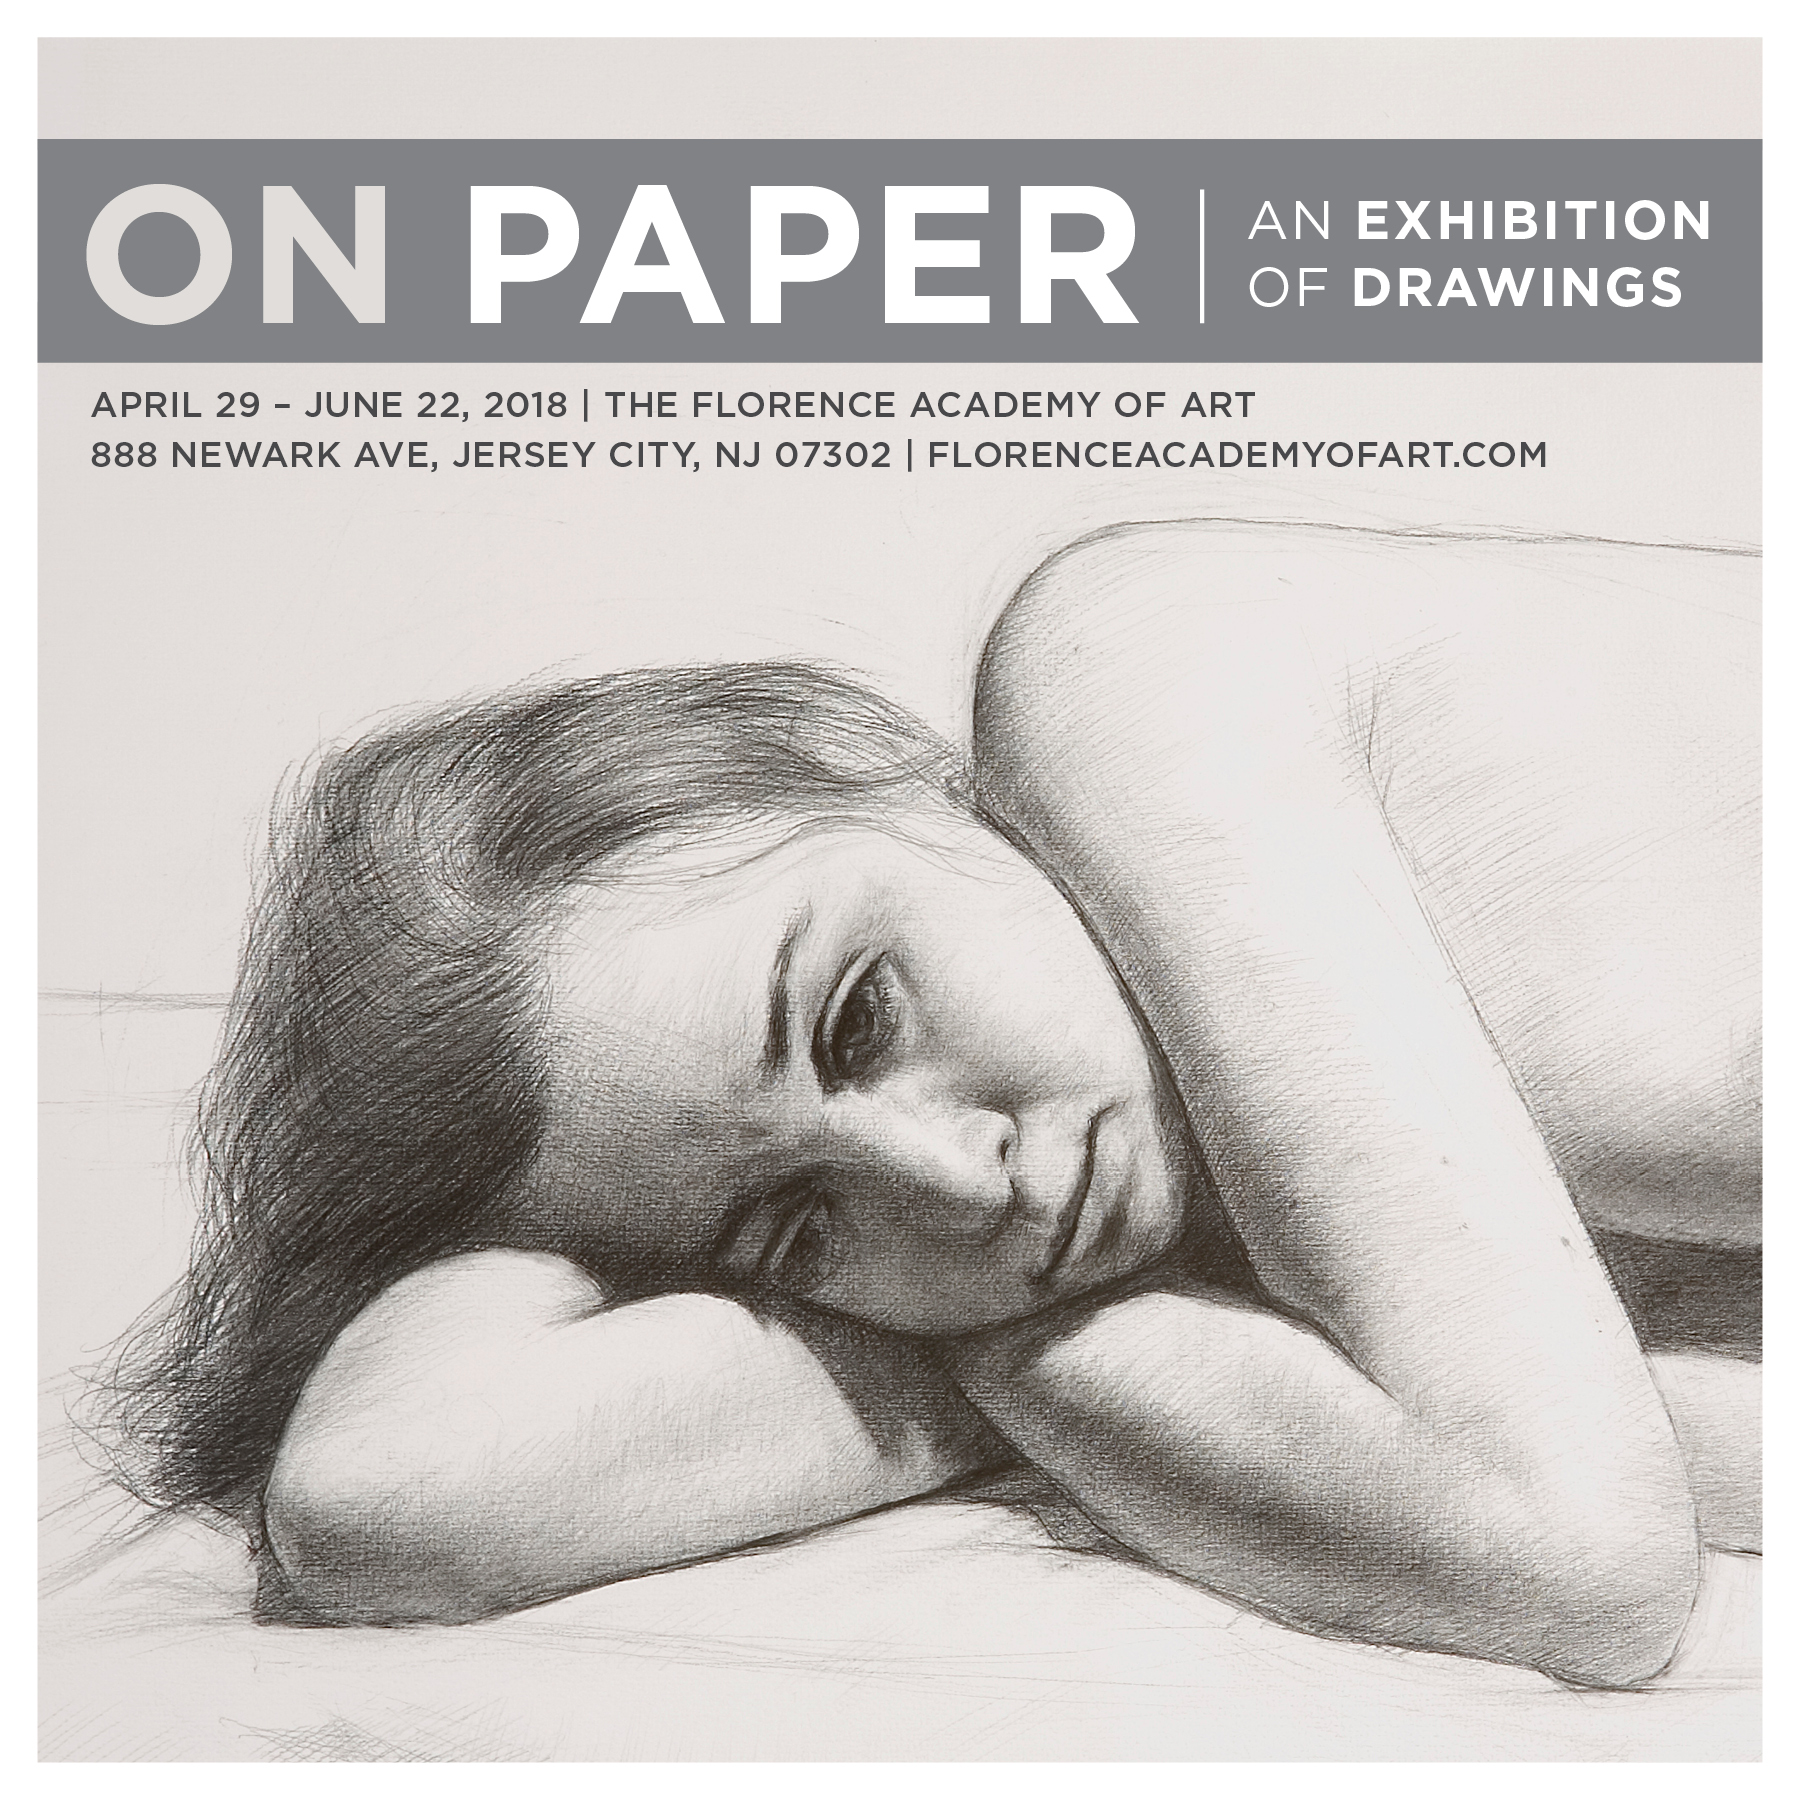 On Paper: An Exhibition of Drawings